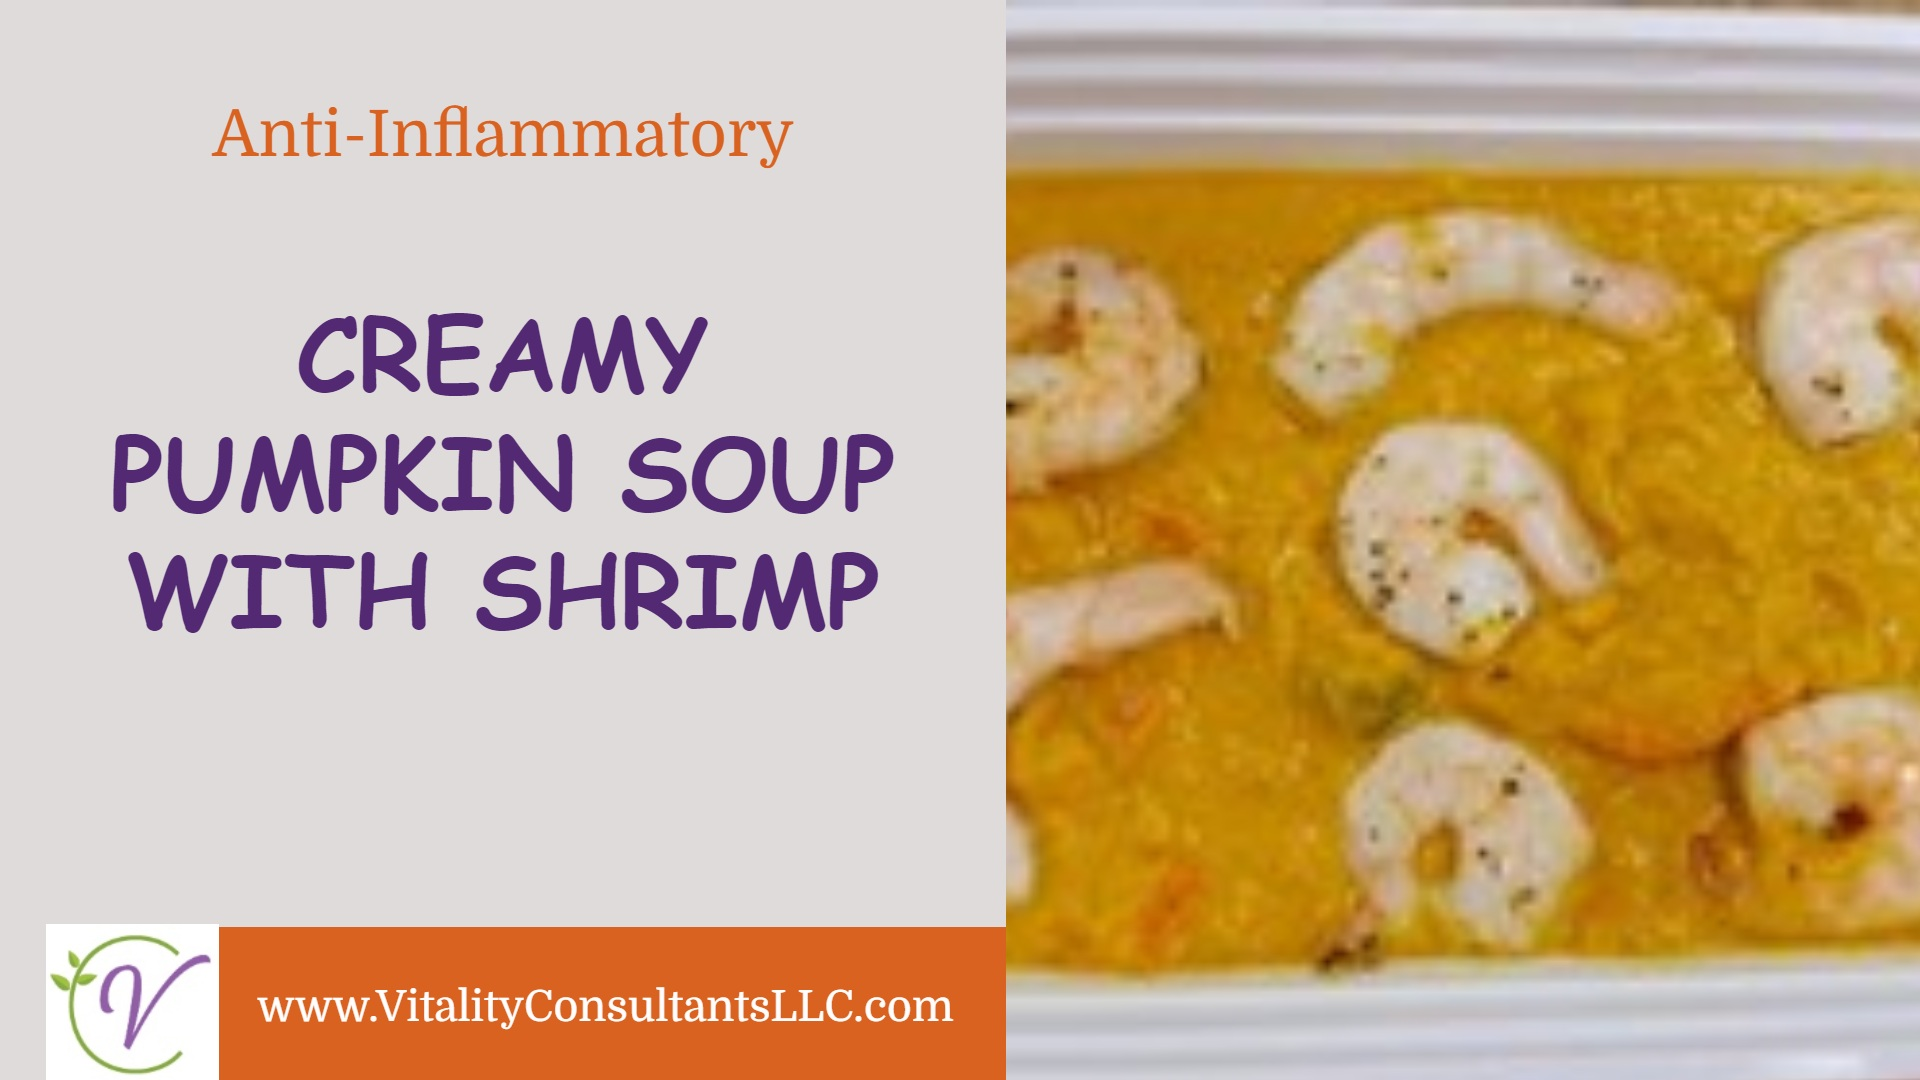 Creamy Pumpkin Soup with Shrimp